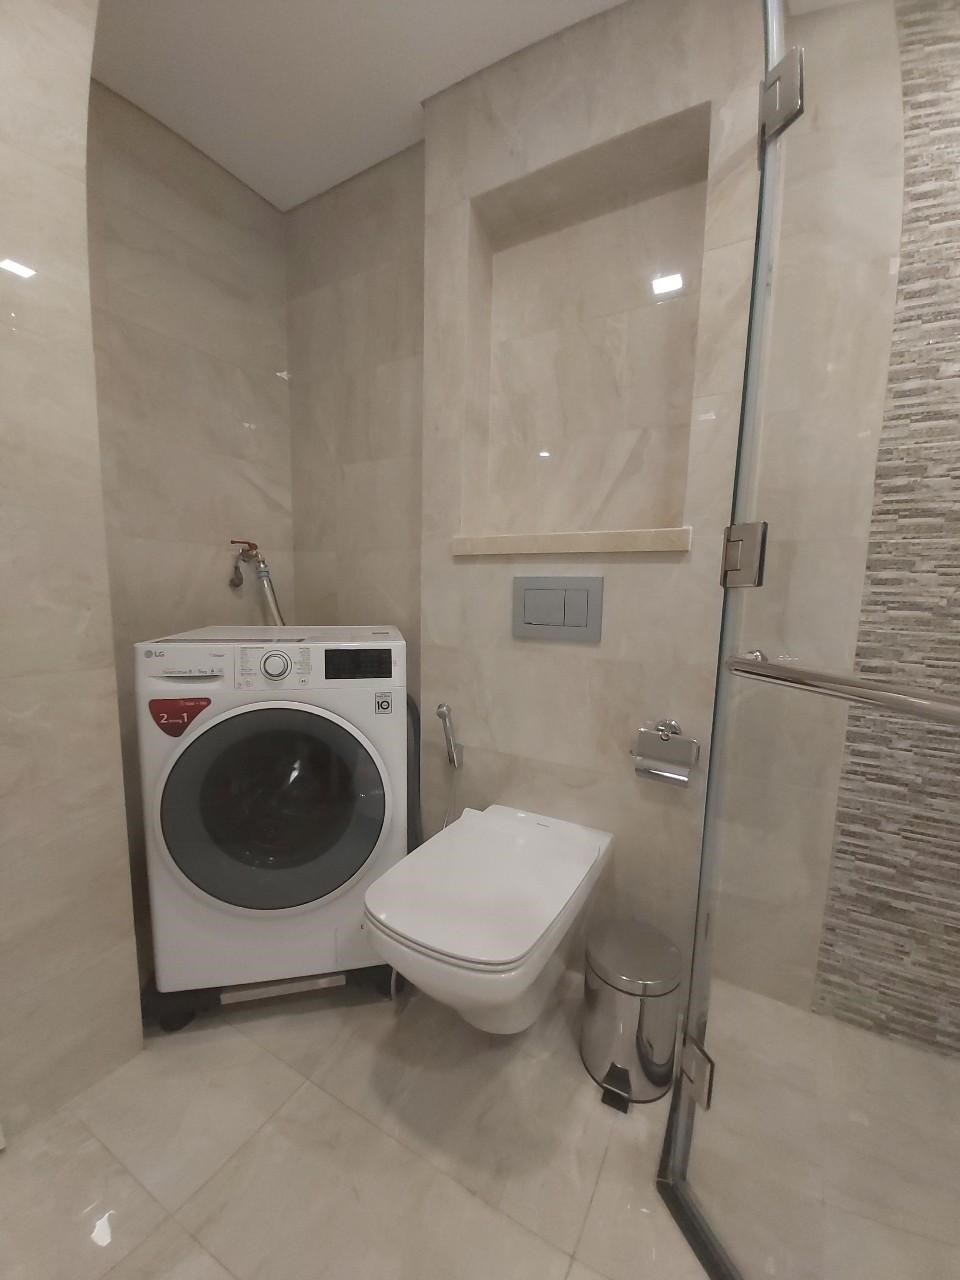 VGR89096 - Vinhomes Golden River Apartment For Rent & Sale Ho Chi Minh - 1 bedroom